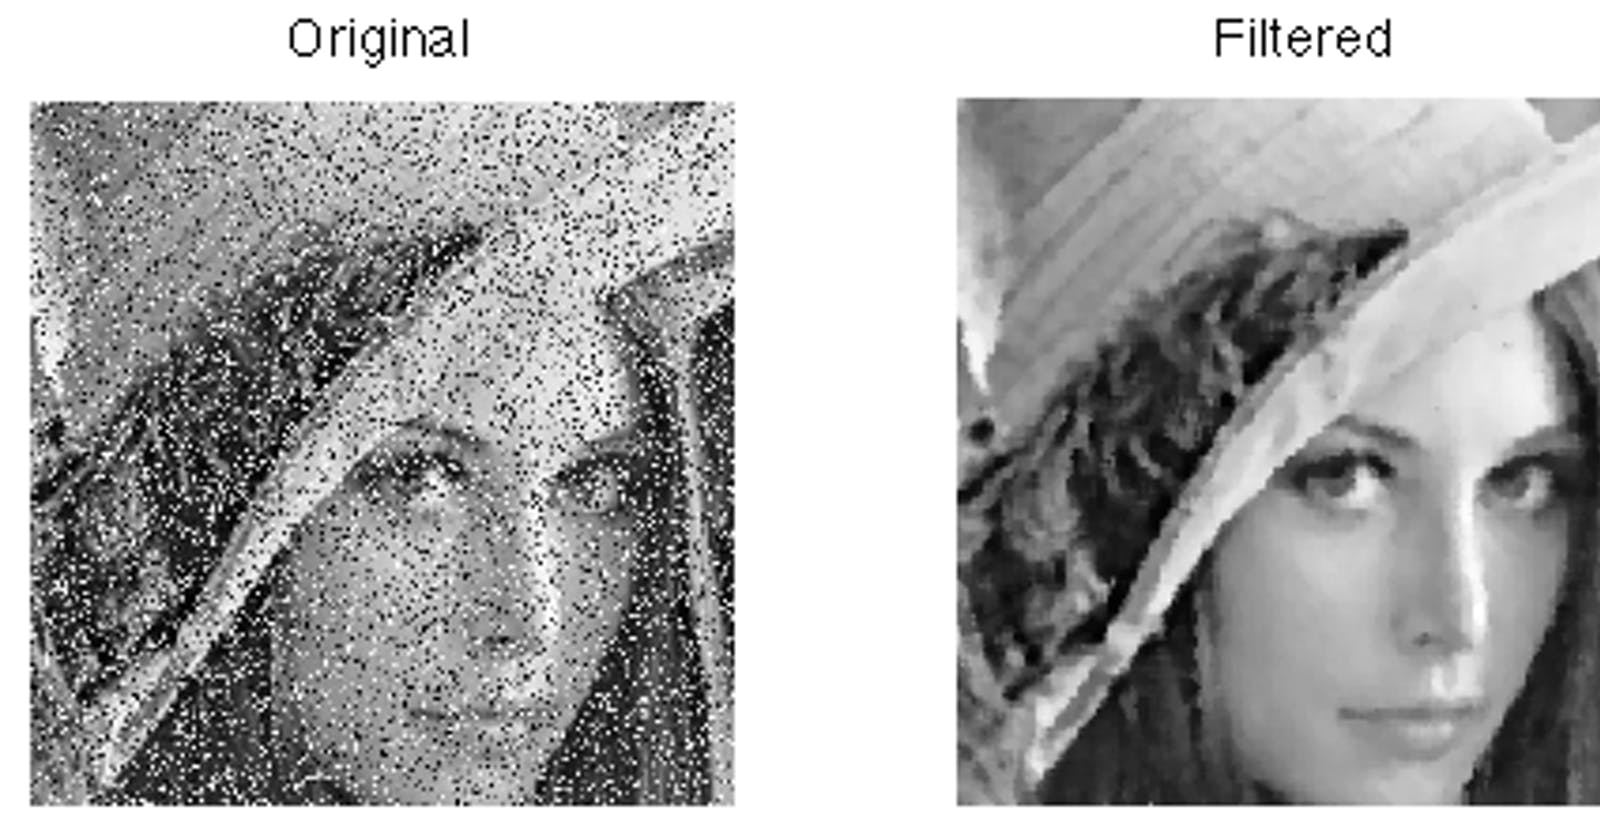 How to Manipulate Images on a GPU